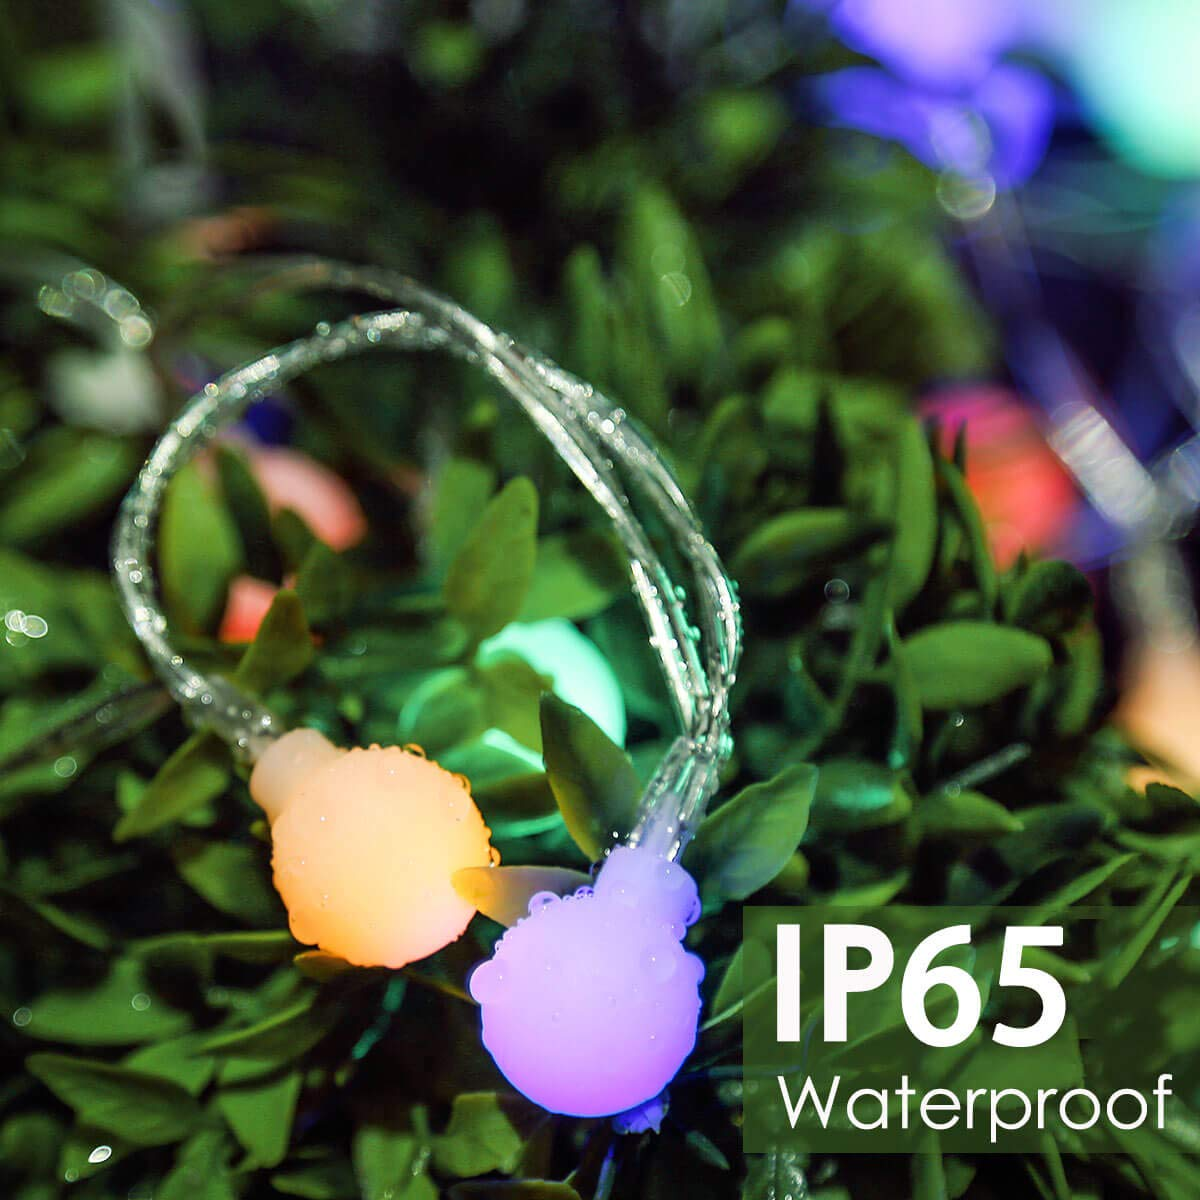 44Ft LED String Lights for Bedroom Patio Garden Wedding Party Xmas Bistro Cafe Porch Multicolor 100 LED Fairy Lights Outdoor Ball String Lights Plug in 8 Modes Waterproof Indoor lights with Remote Globe String Lights